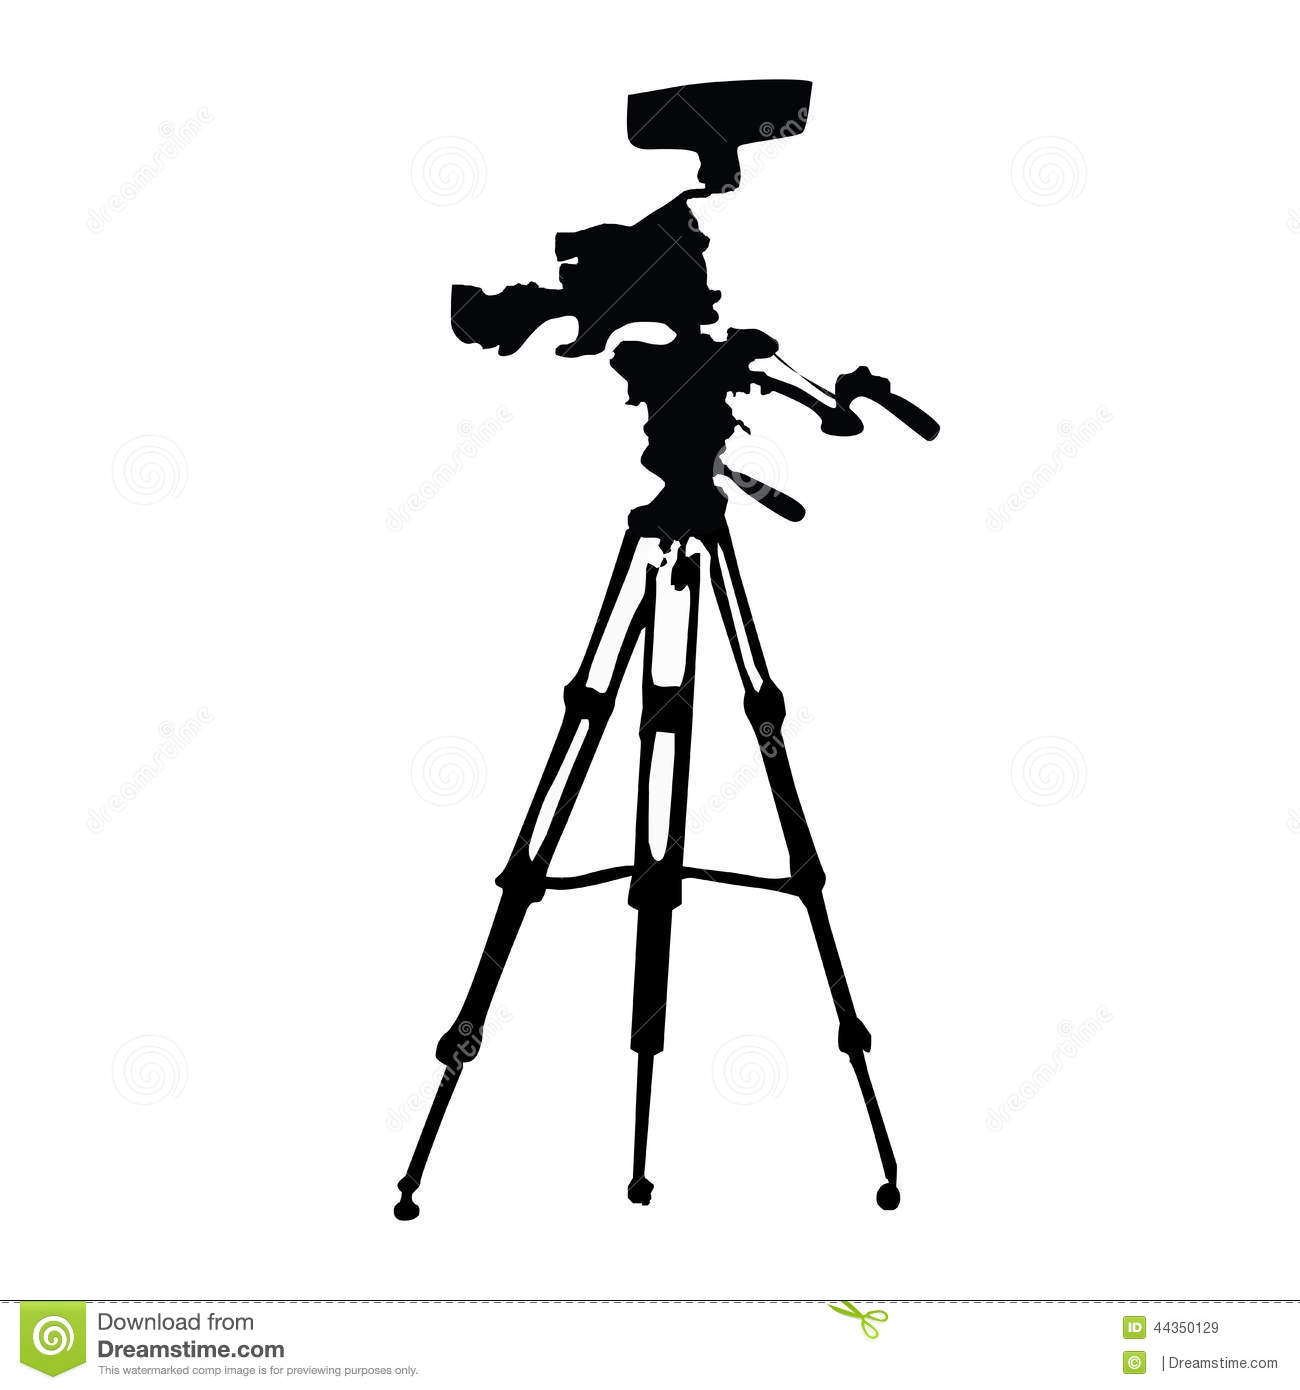 Tripod Stock Vector Illustration Of Black Illustrator